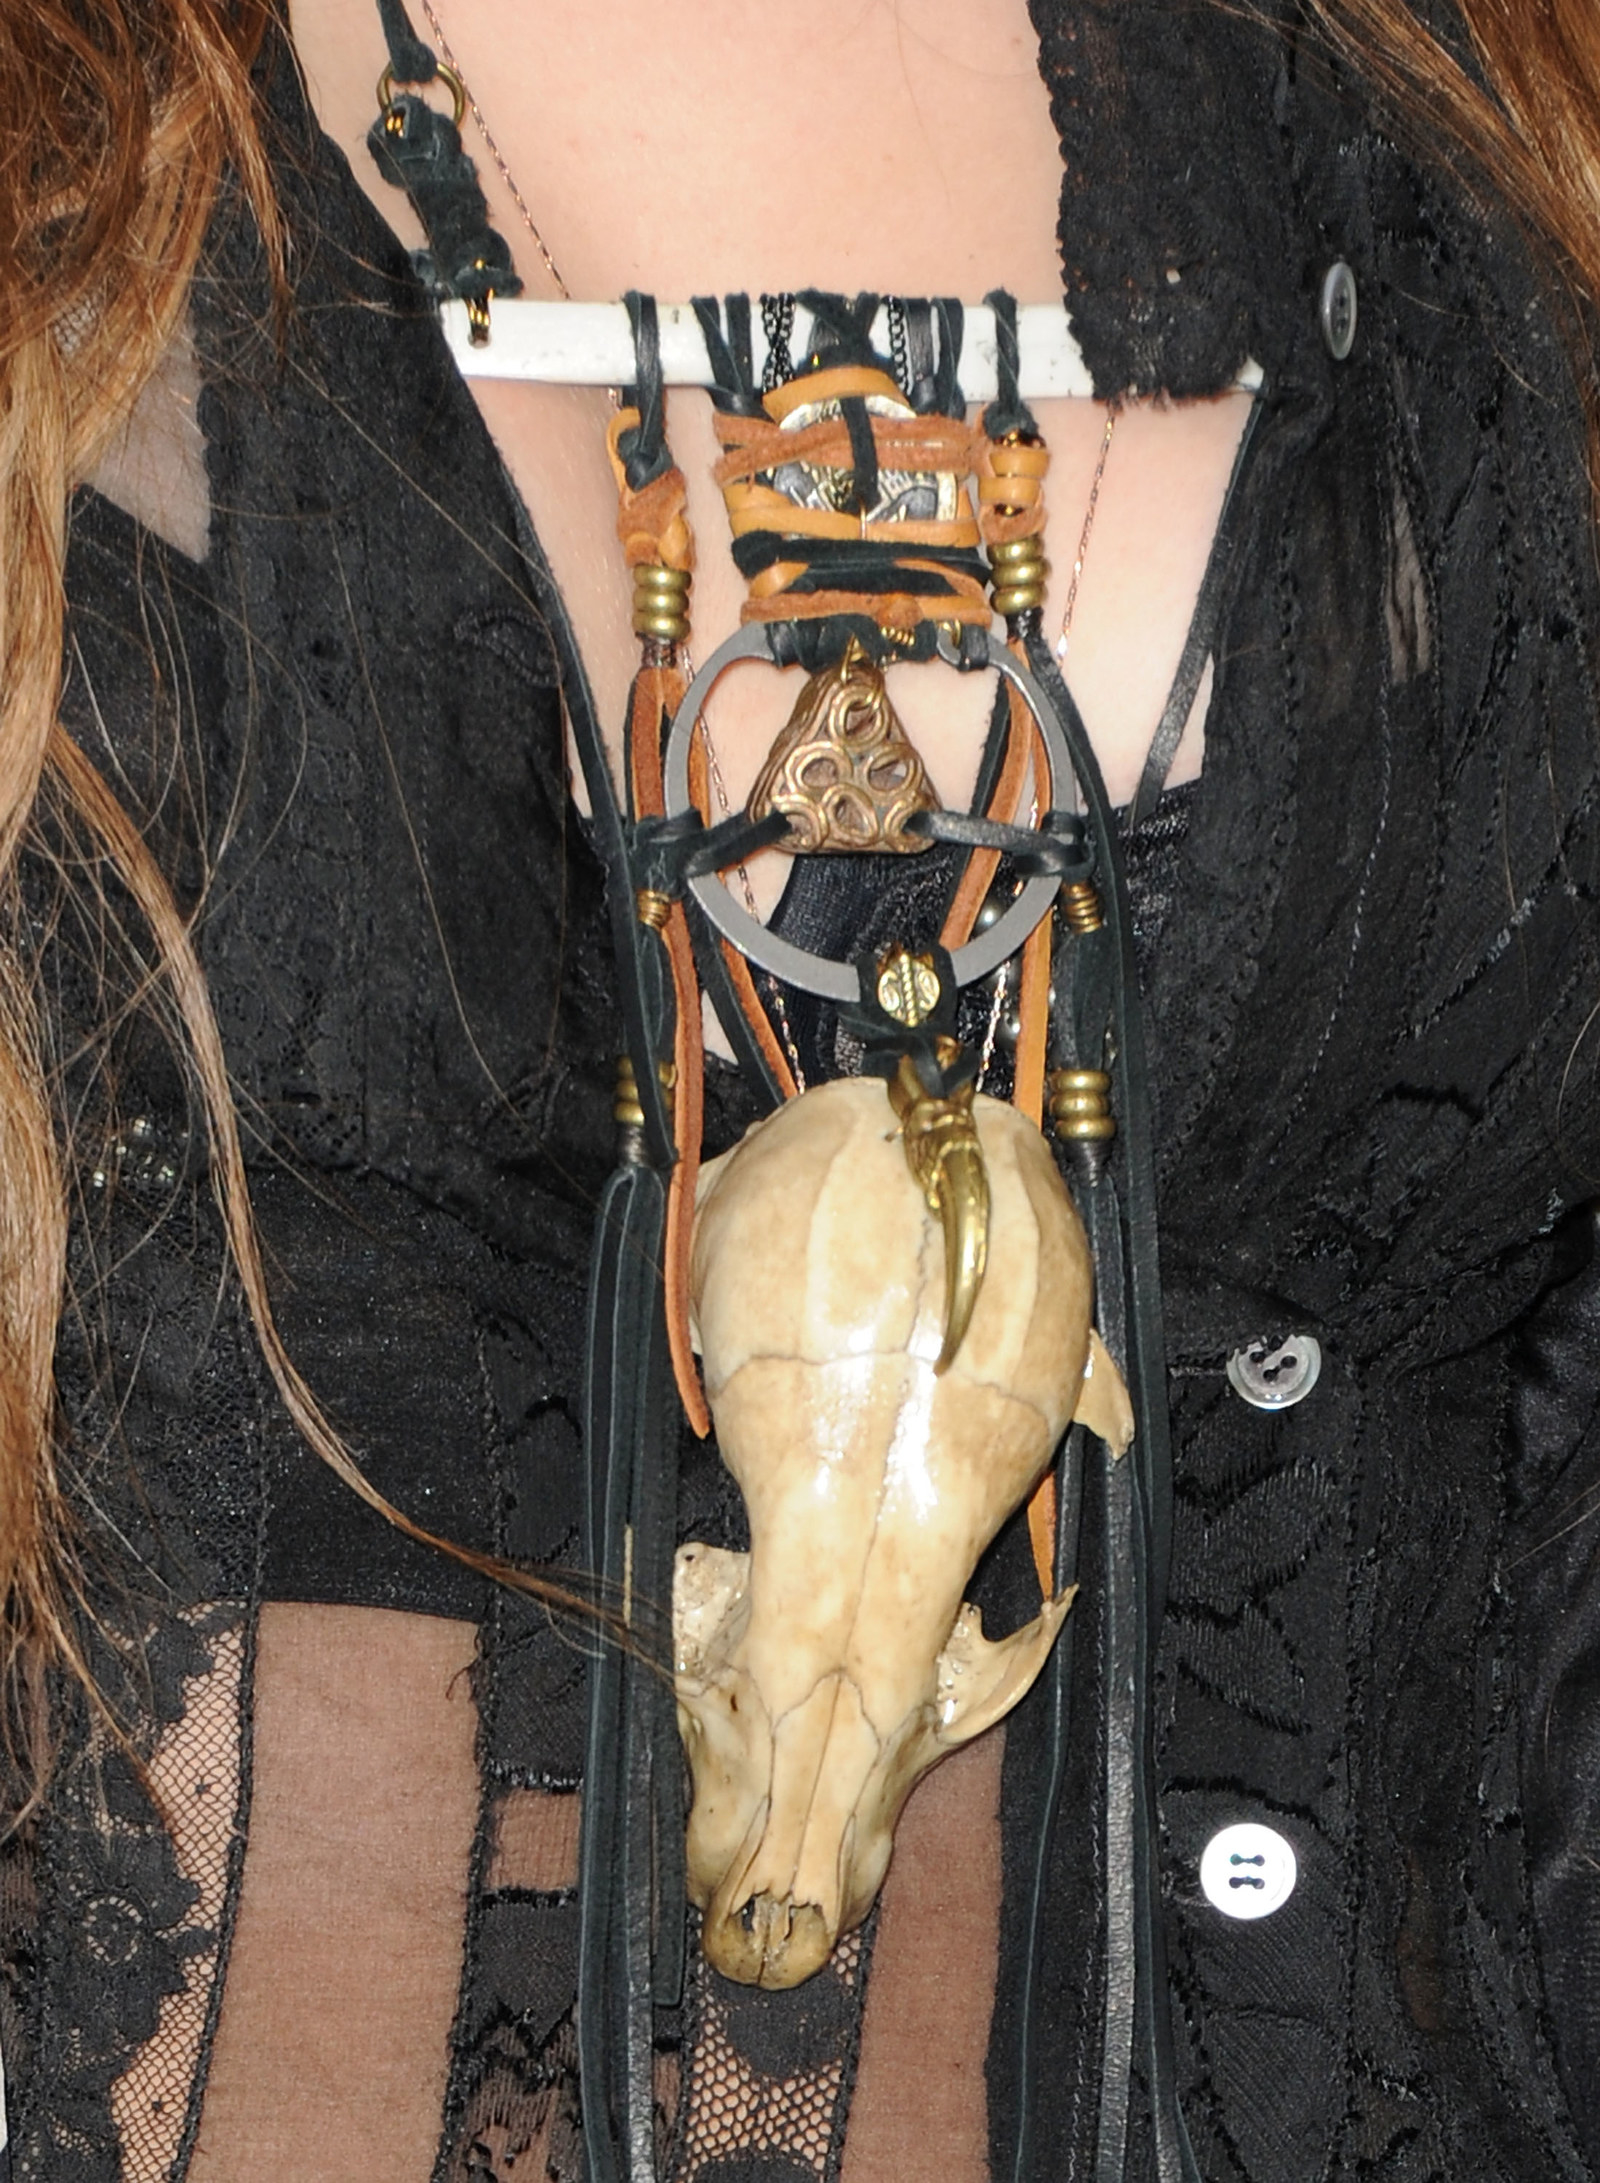 Miley wore a literal animal skull